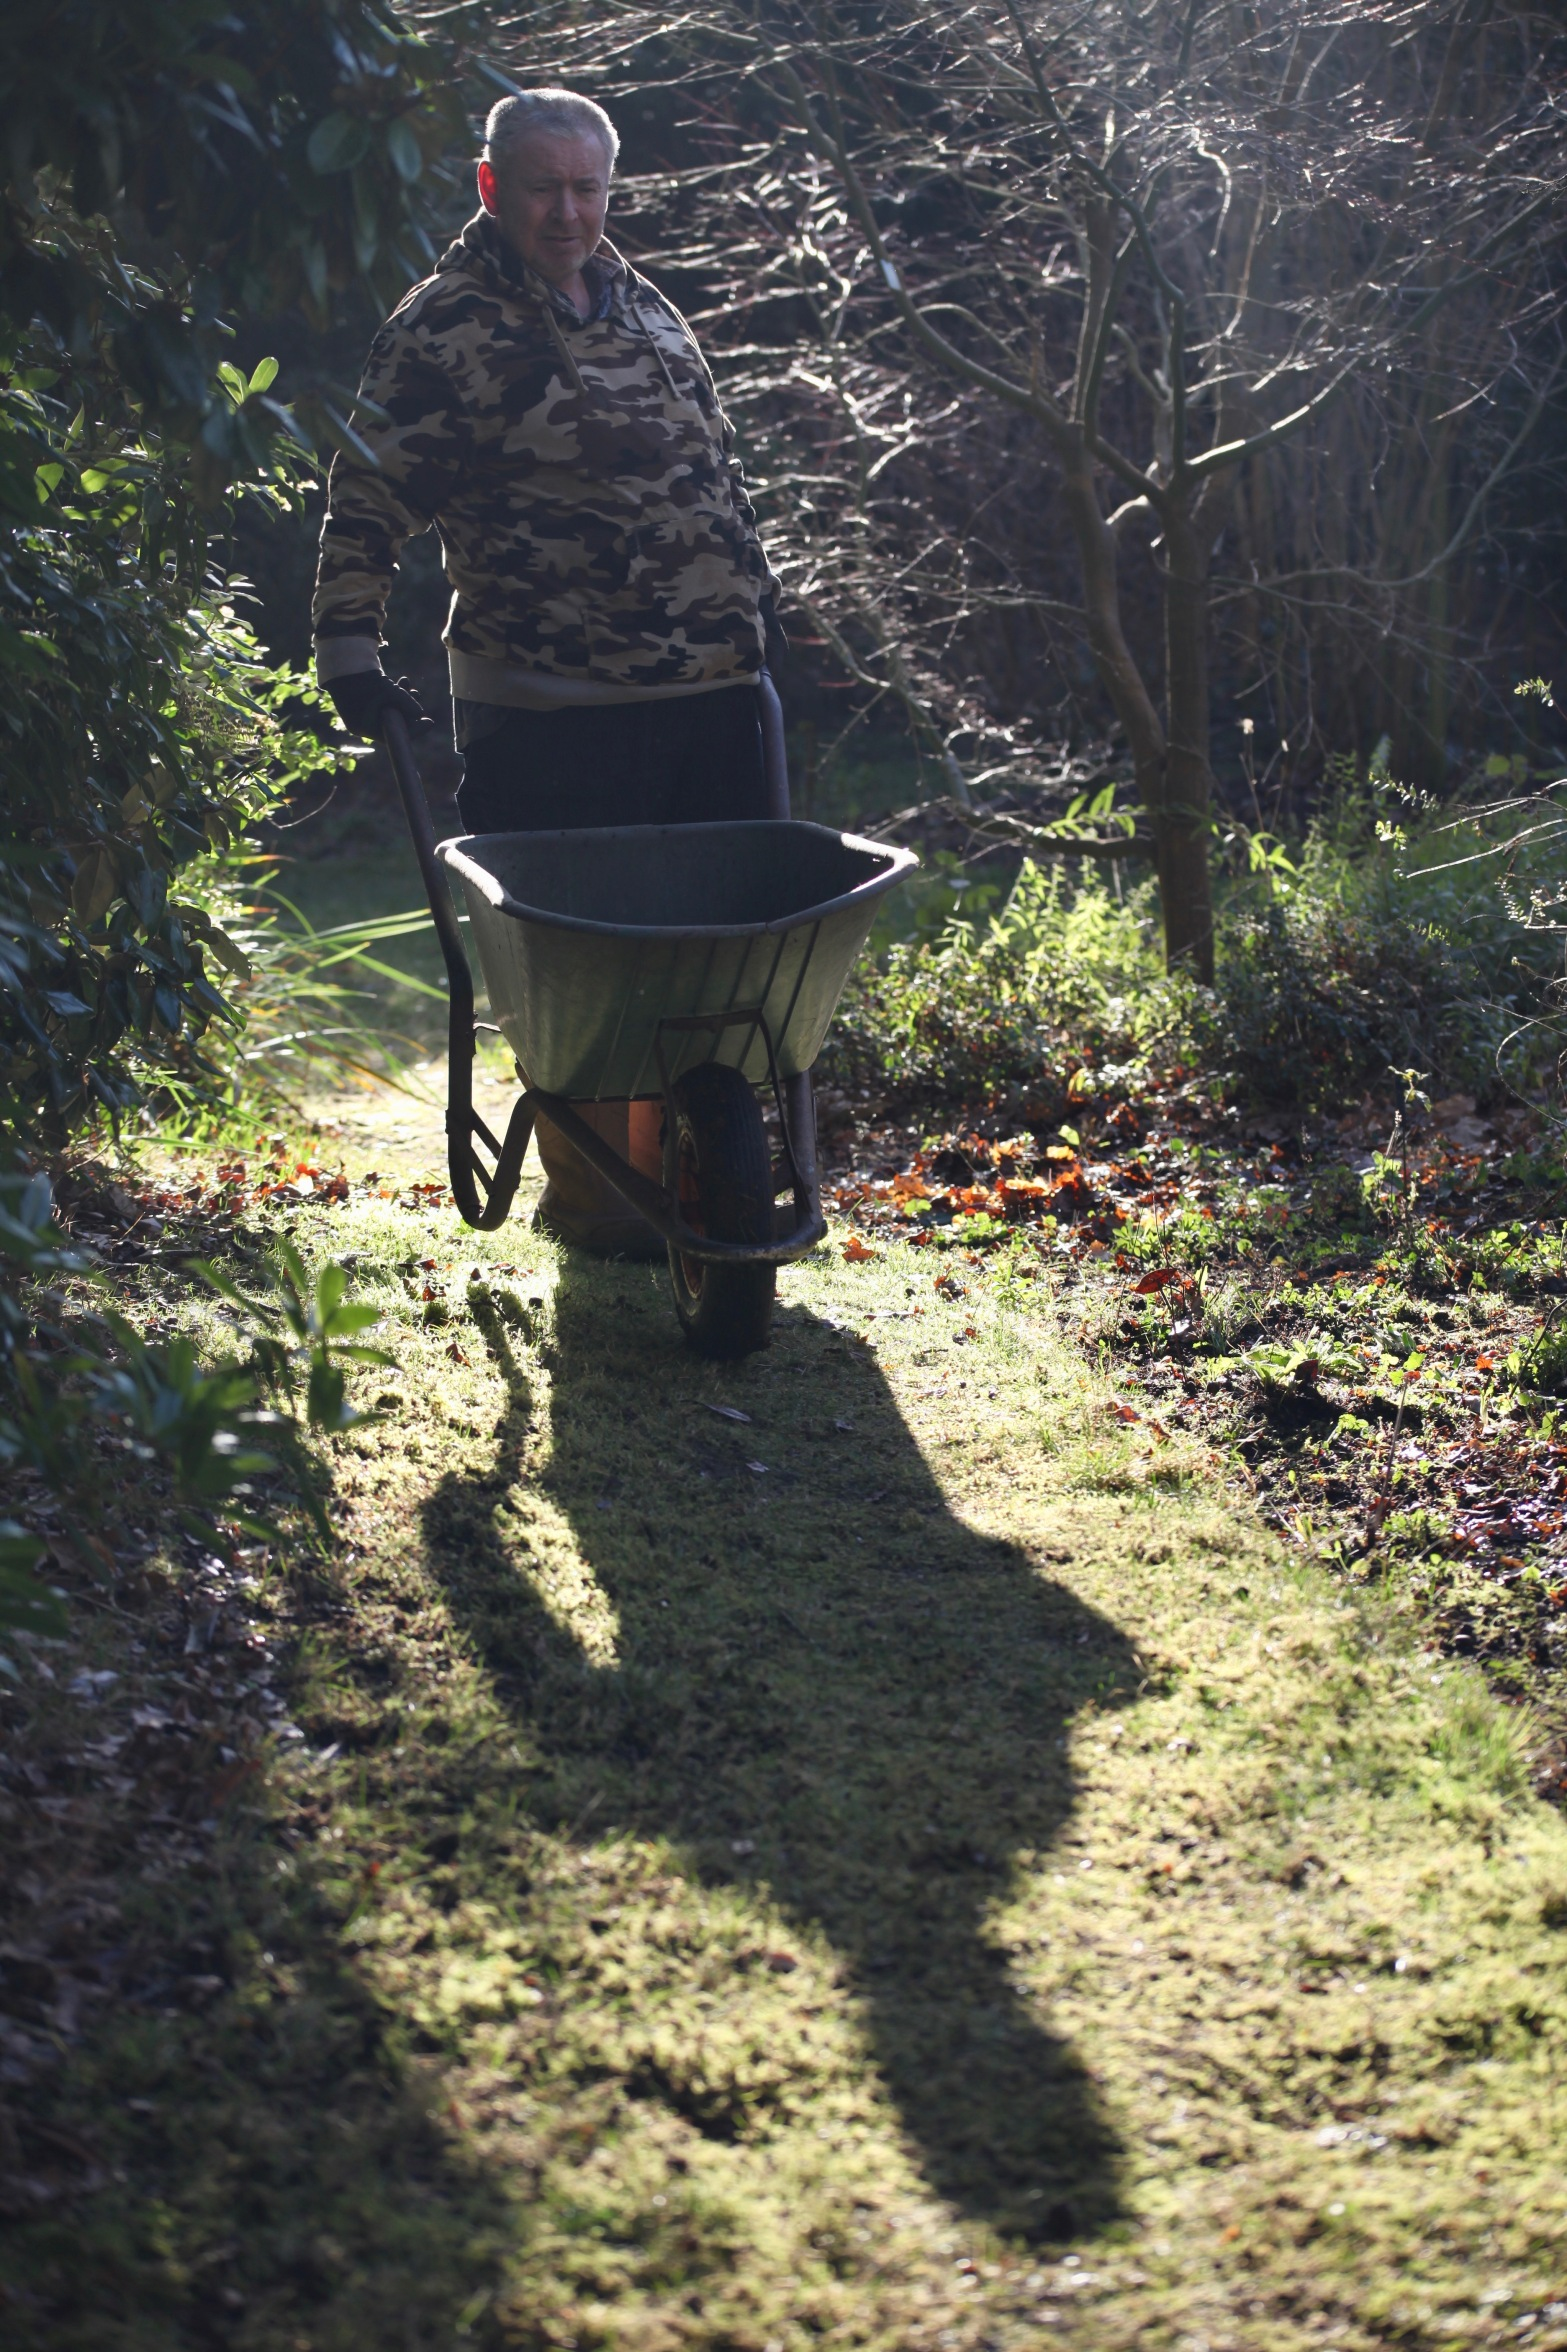 Gardener Rob with wheelbarrow